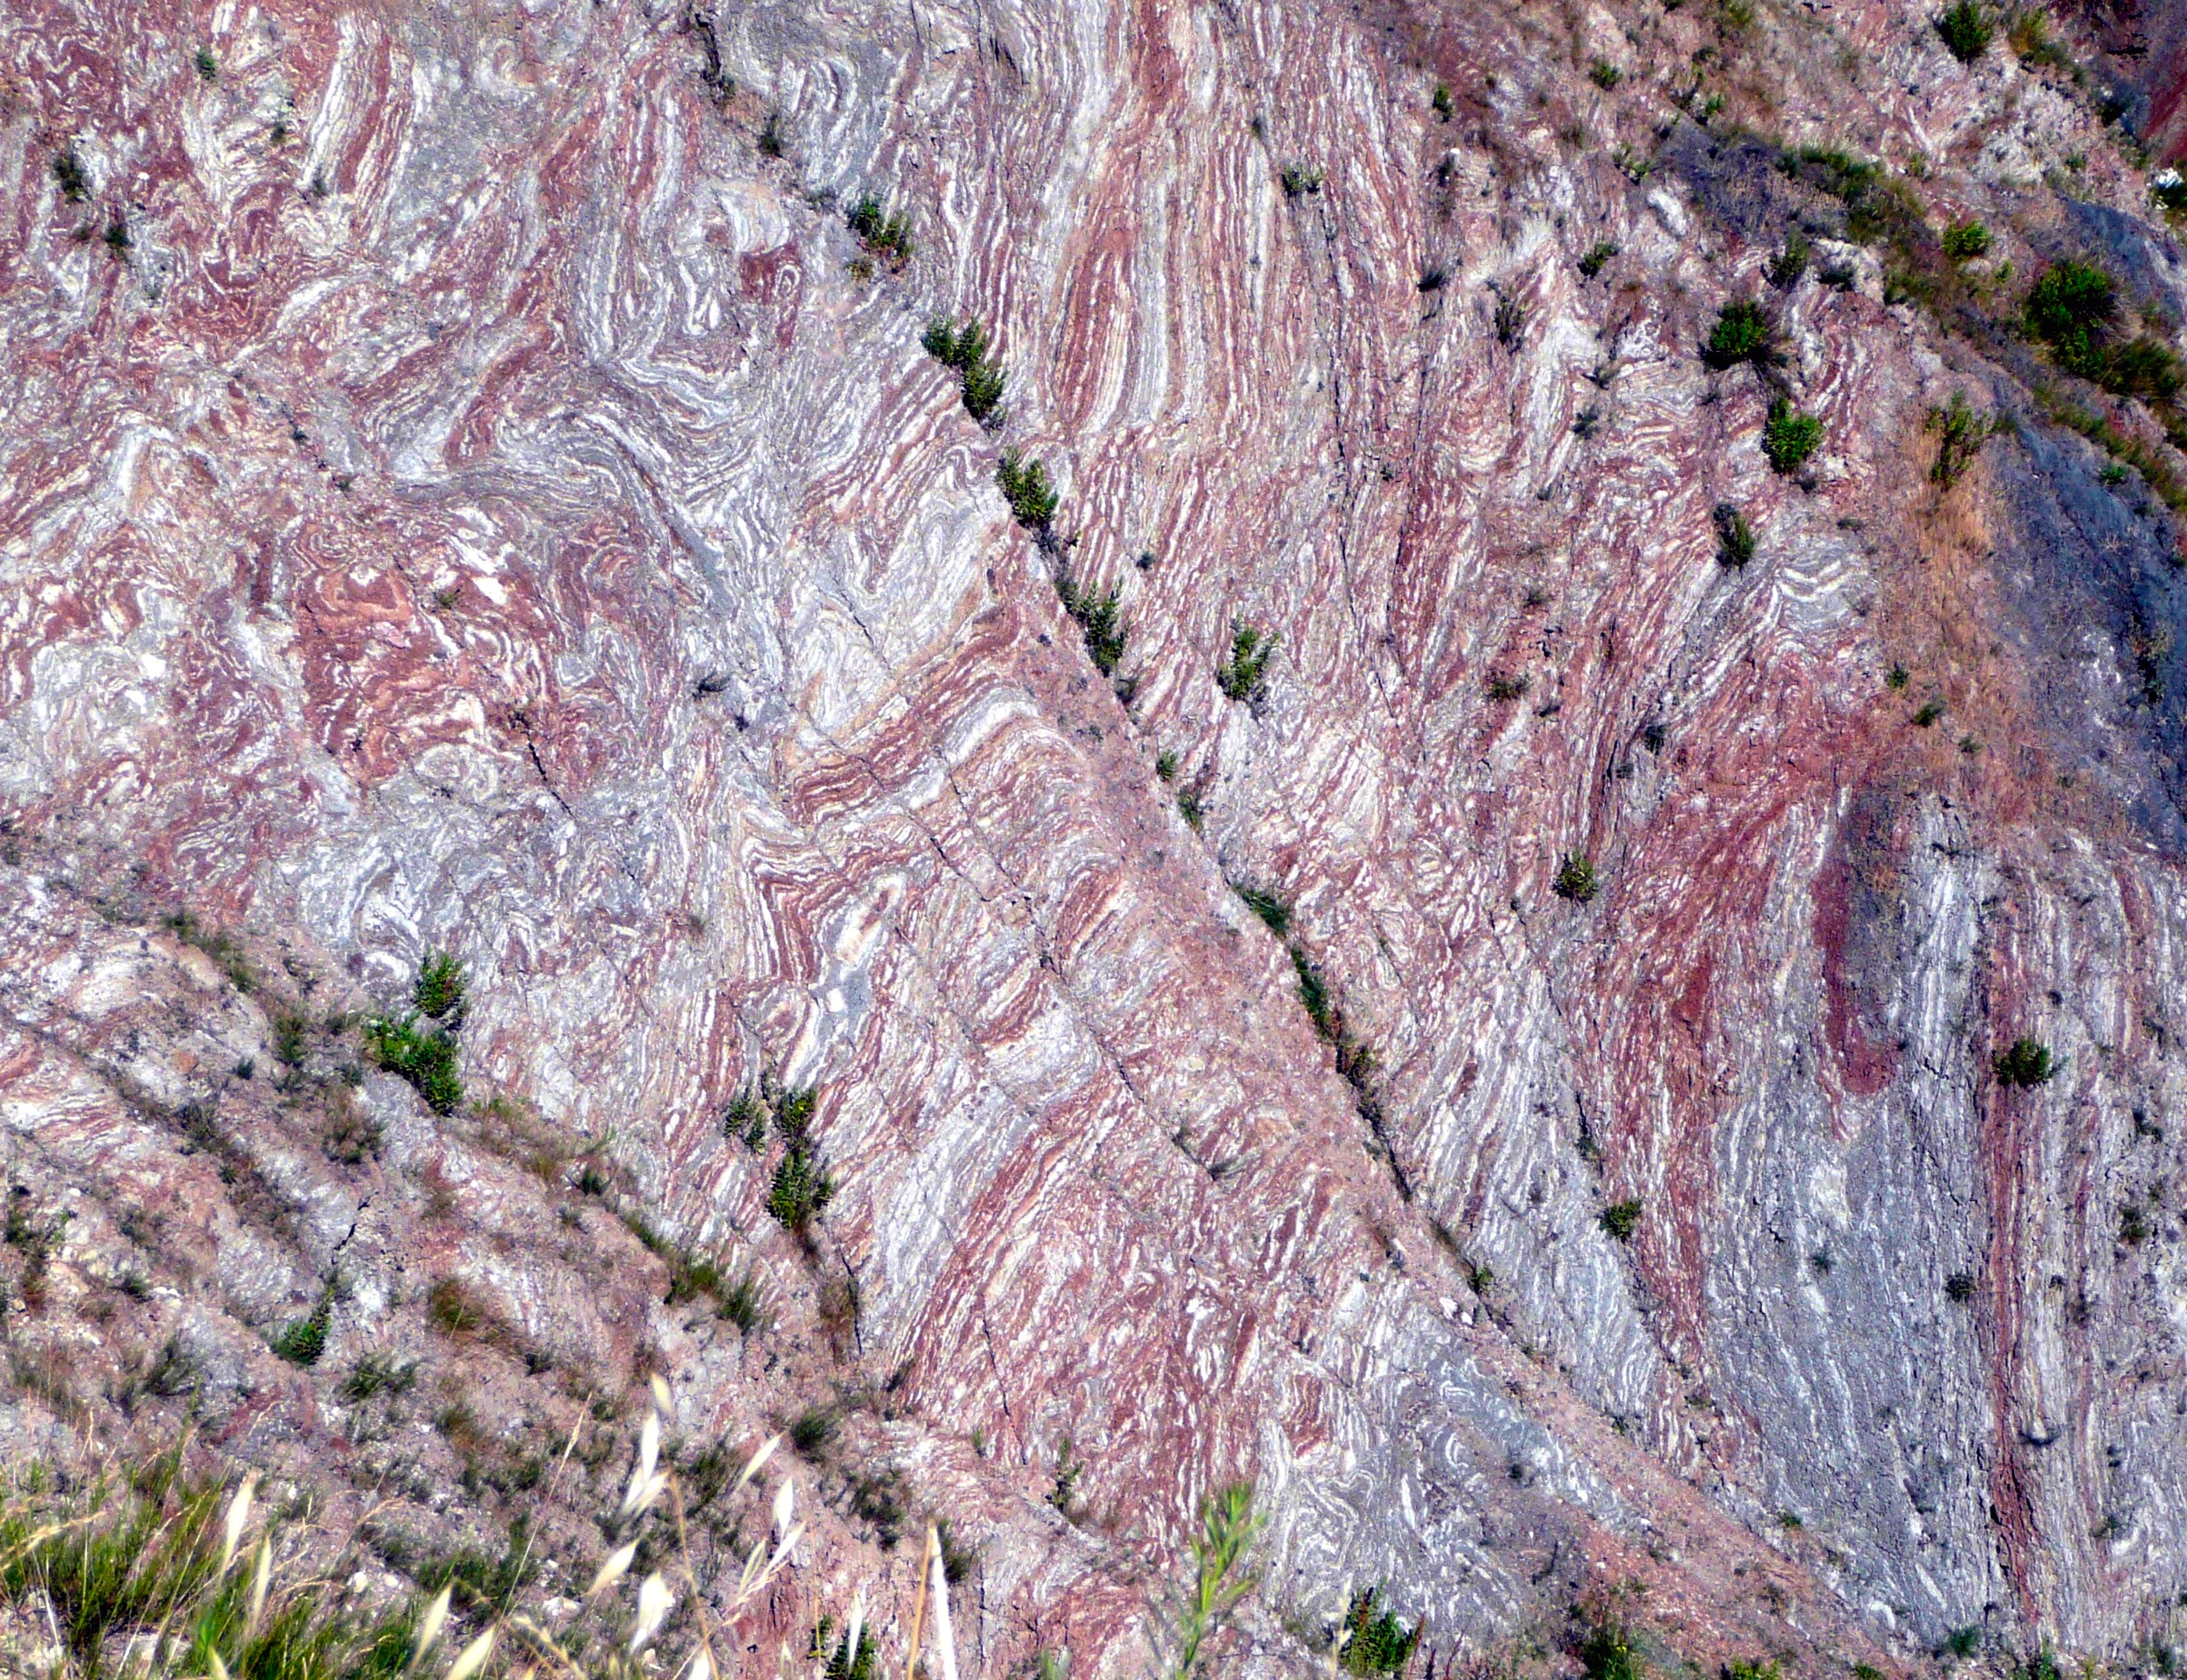 Colourful scaly clays in the Northern Apennines